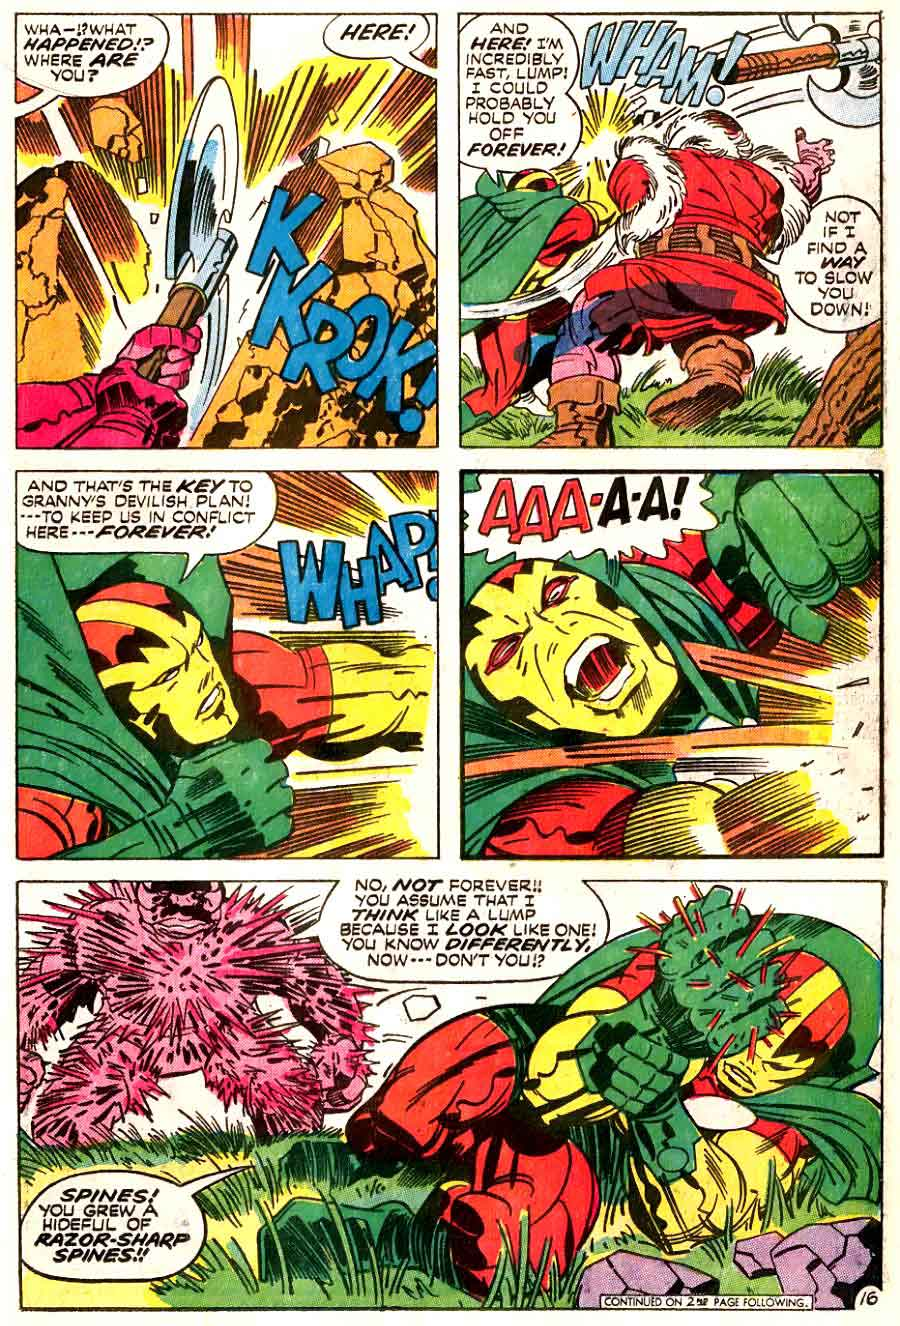 Mister Miracle v1 #8 dc 1970s bronze age comic book page art by Jack Kirby